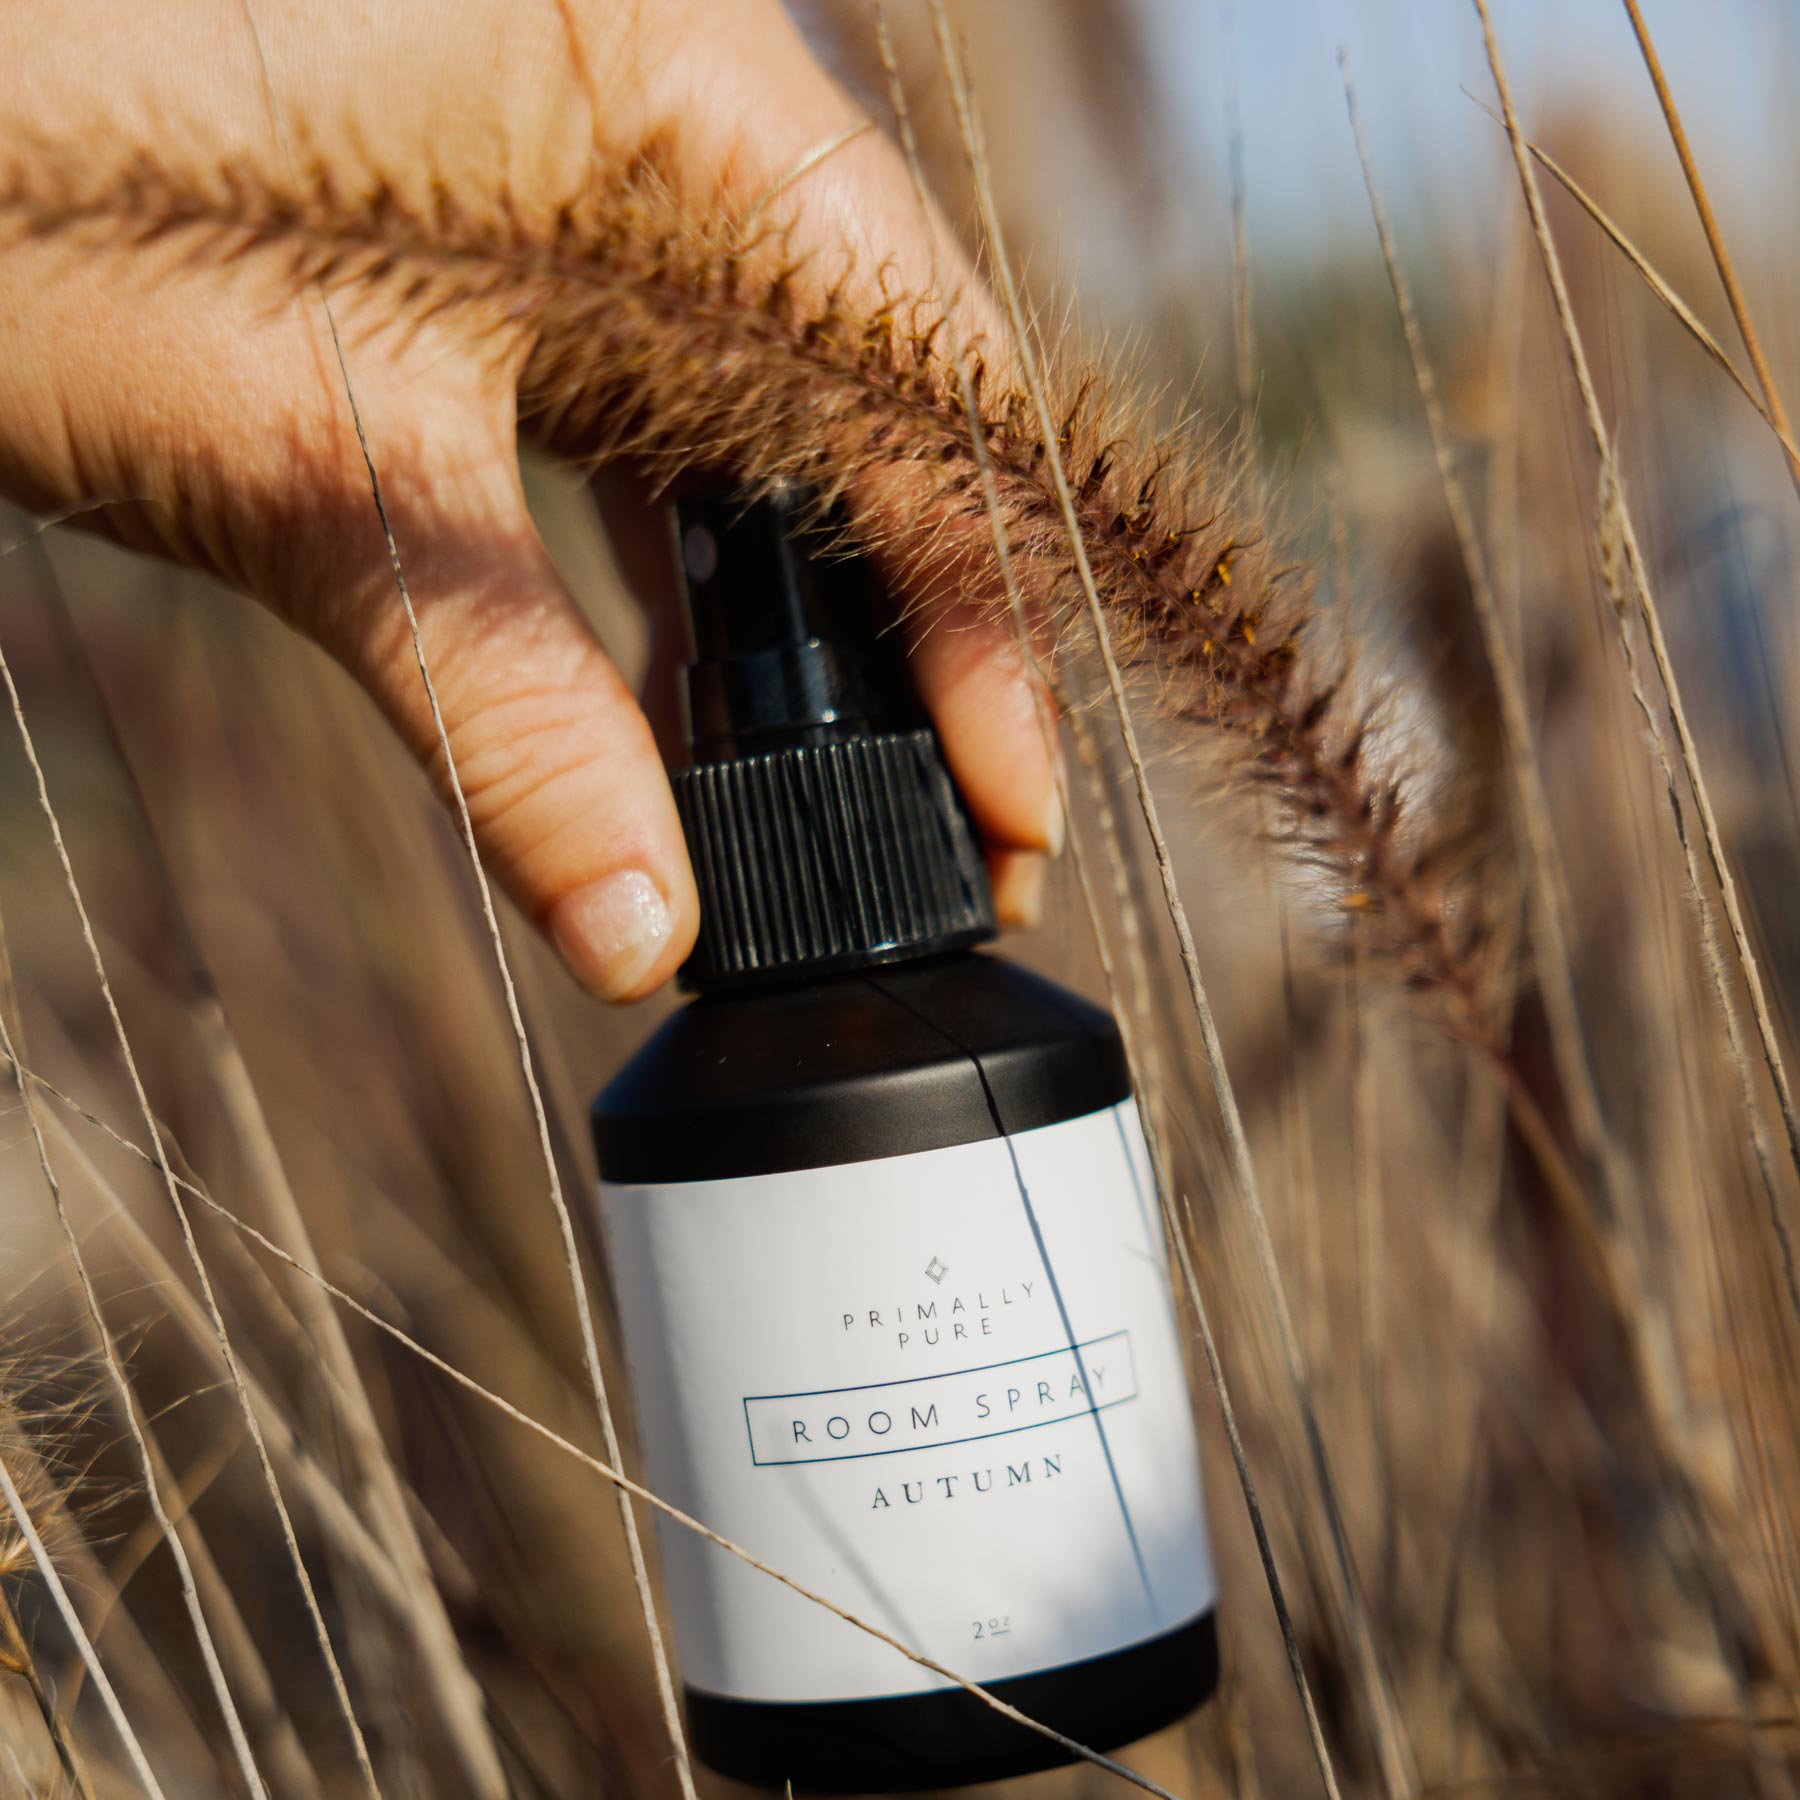 Autumn Home Room Spray by Primally Pure